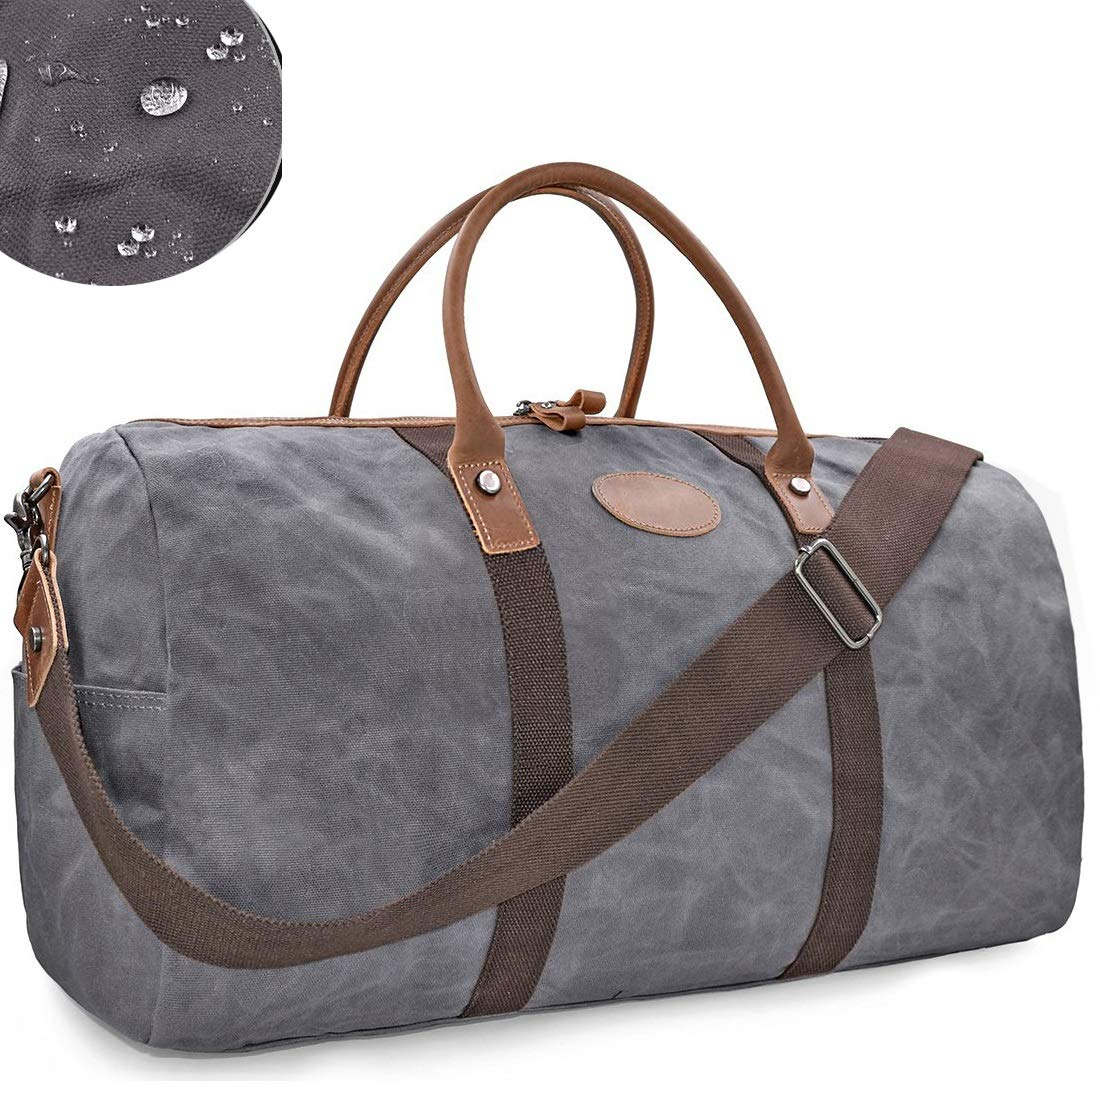 VOVIJ Waxed Canvas Waterproof Sports Gym Bag,with Shoes Compartment & Wet Pocket,45L (Color : Gray)